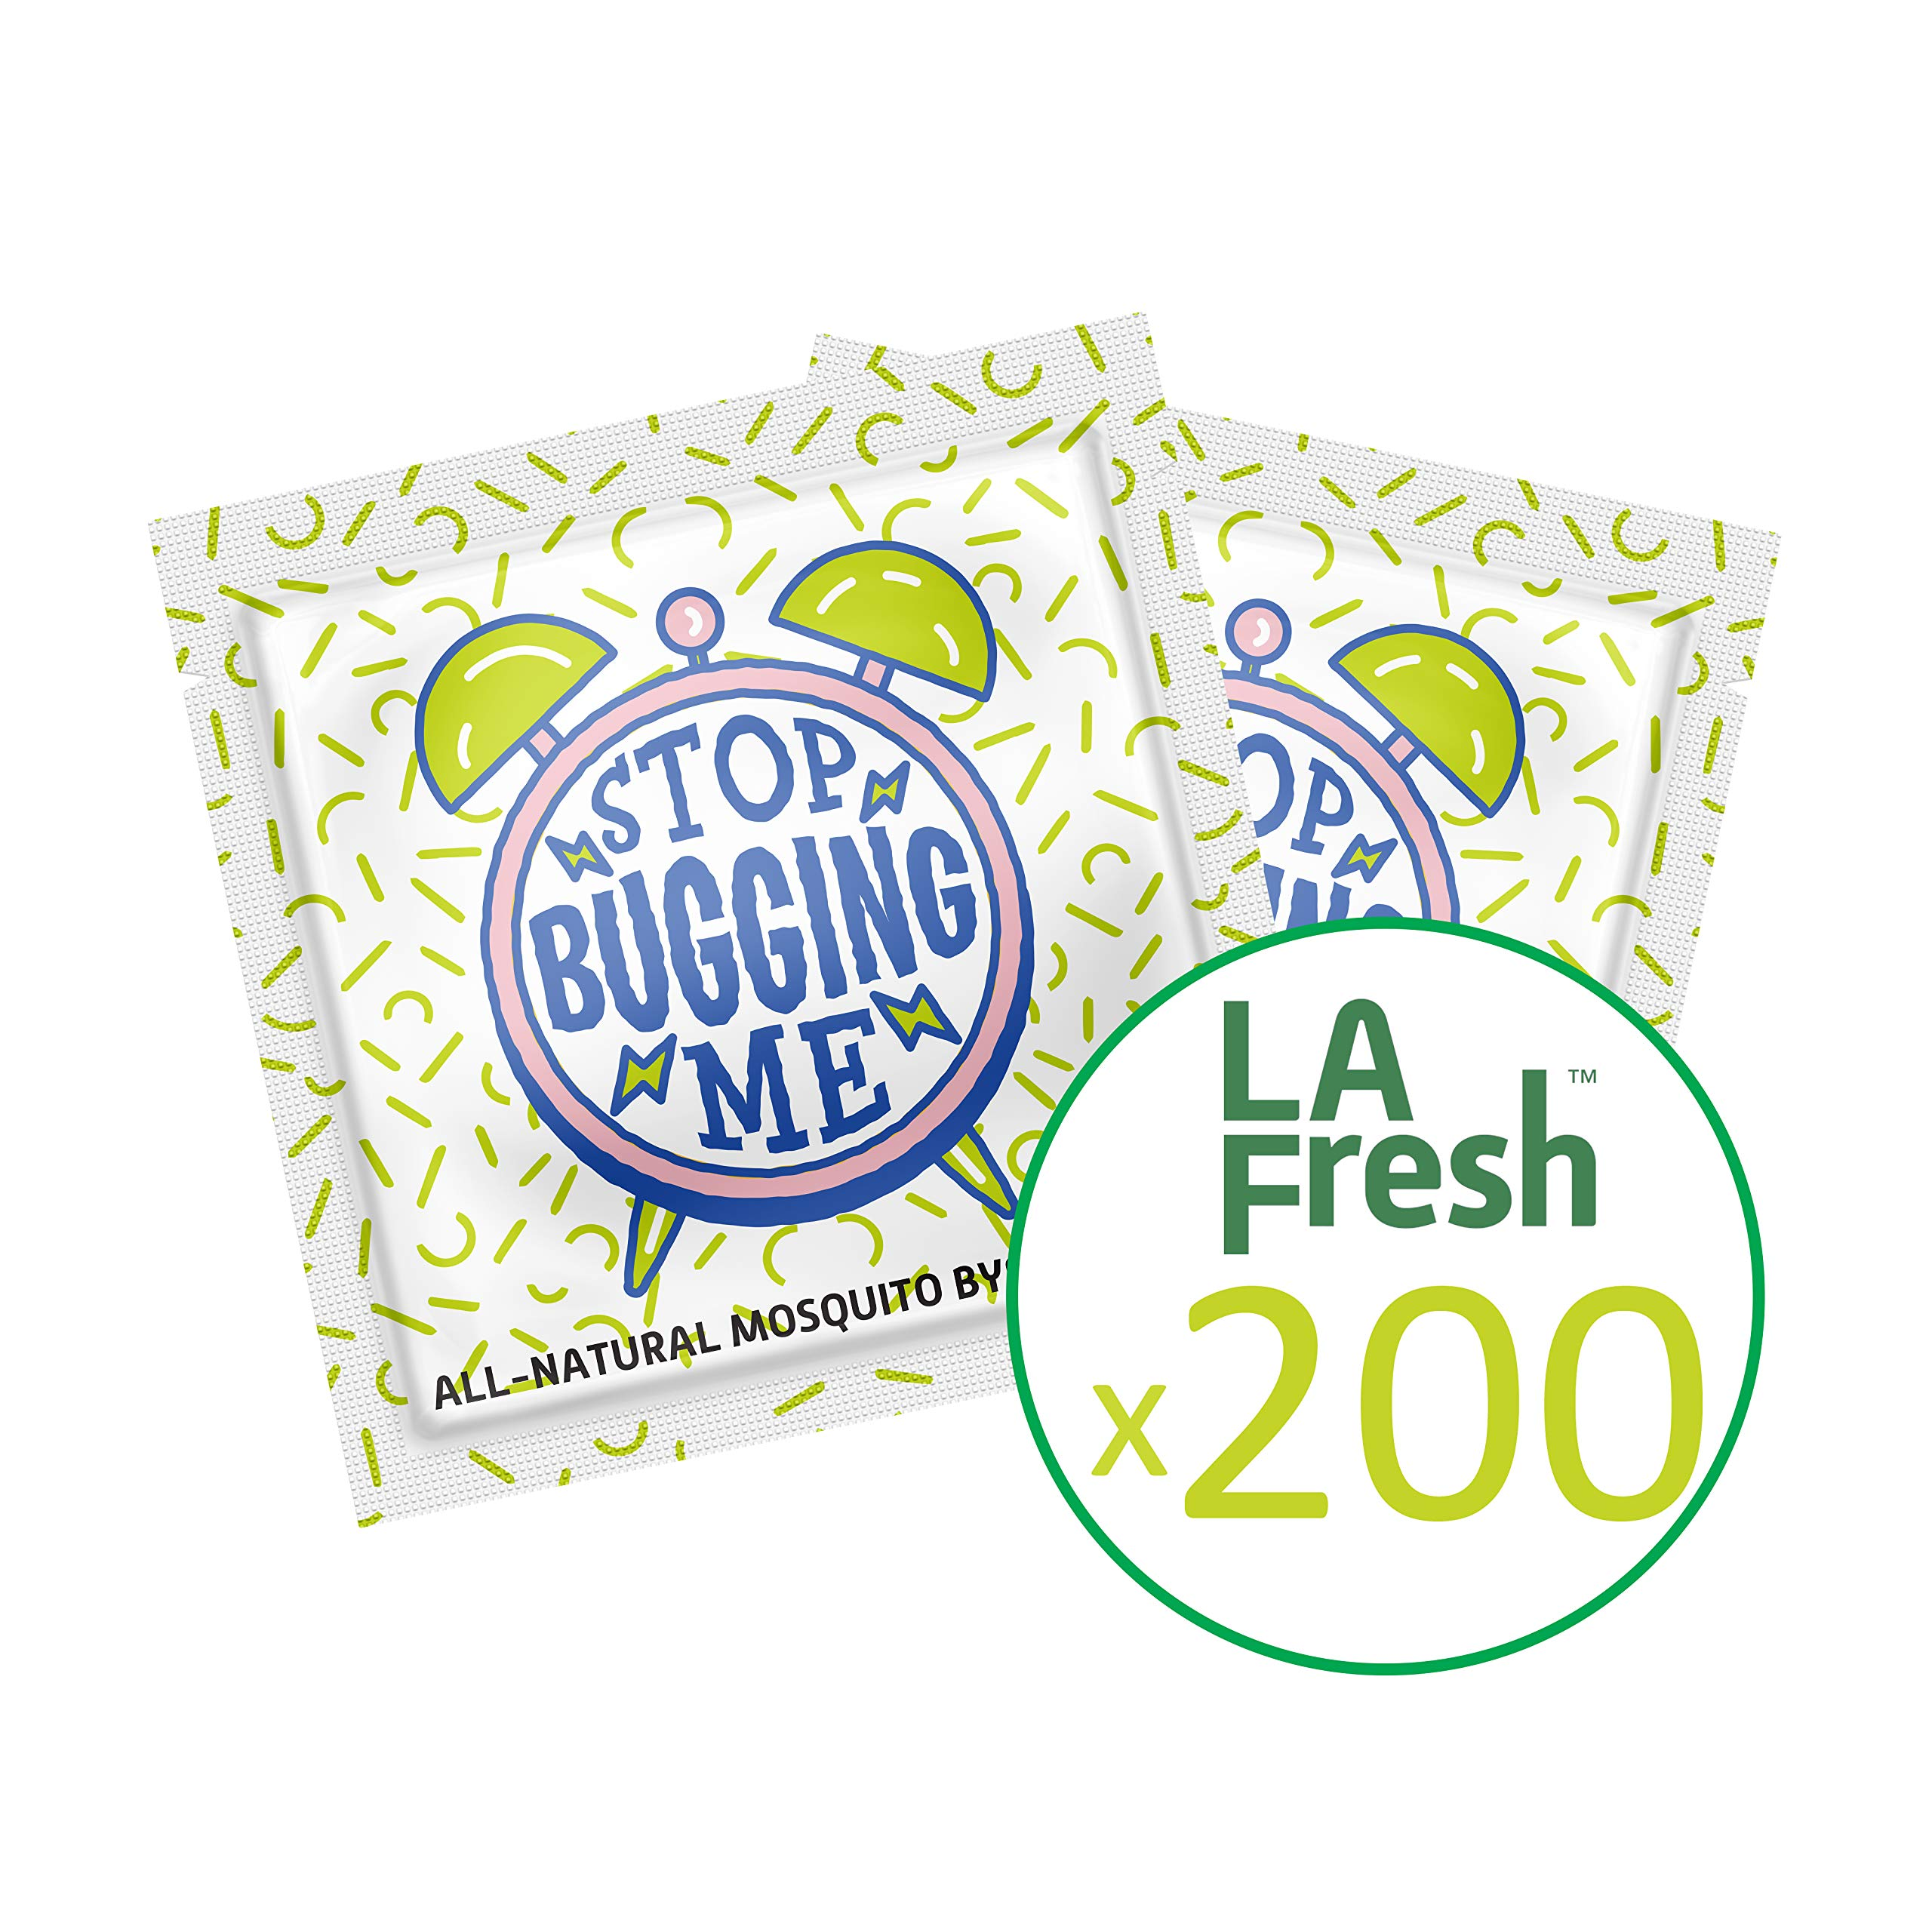 La Fresh Mosquito Repellent Wipes, Individually Wrapped - Natural, Deet Free, Non Toxic, Long Lasting Repellent Protects Against Almost All Bugs 200 Packets by La Fresh